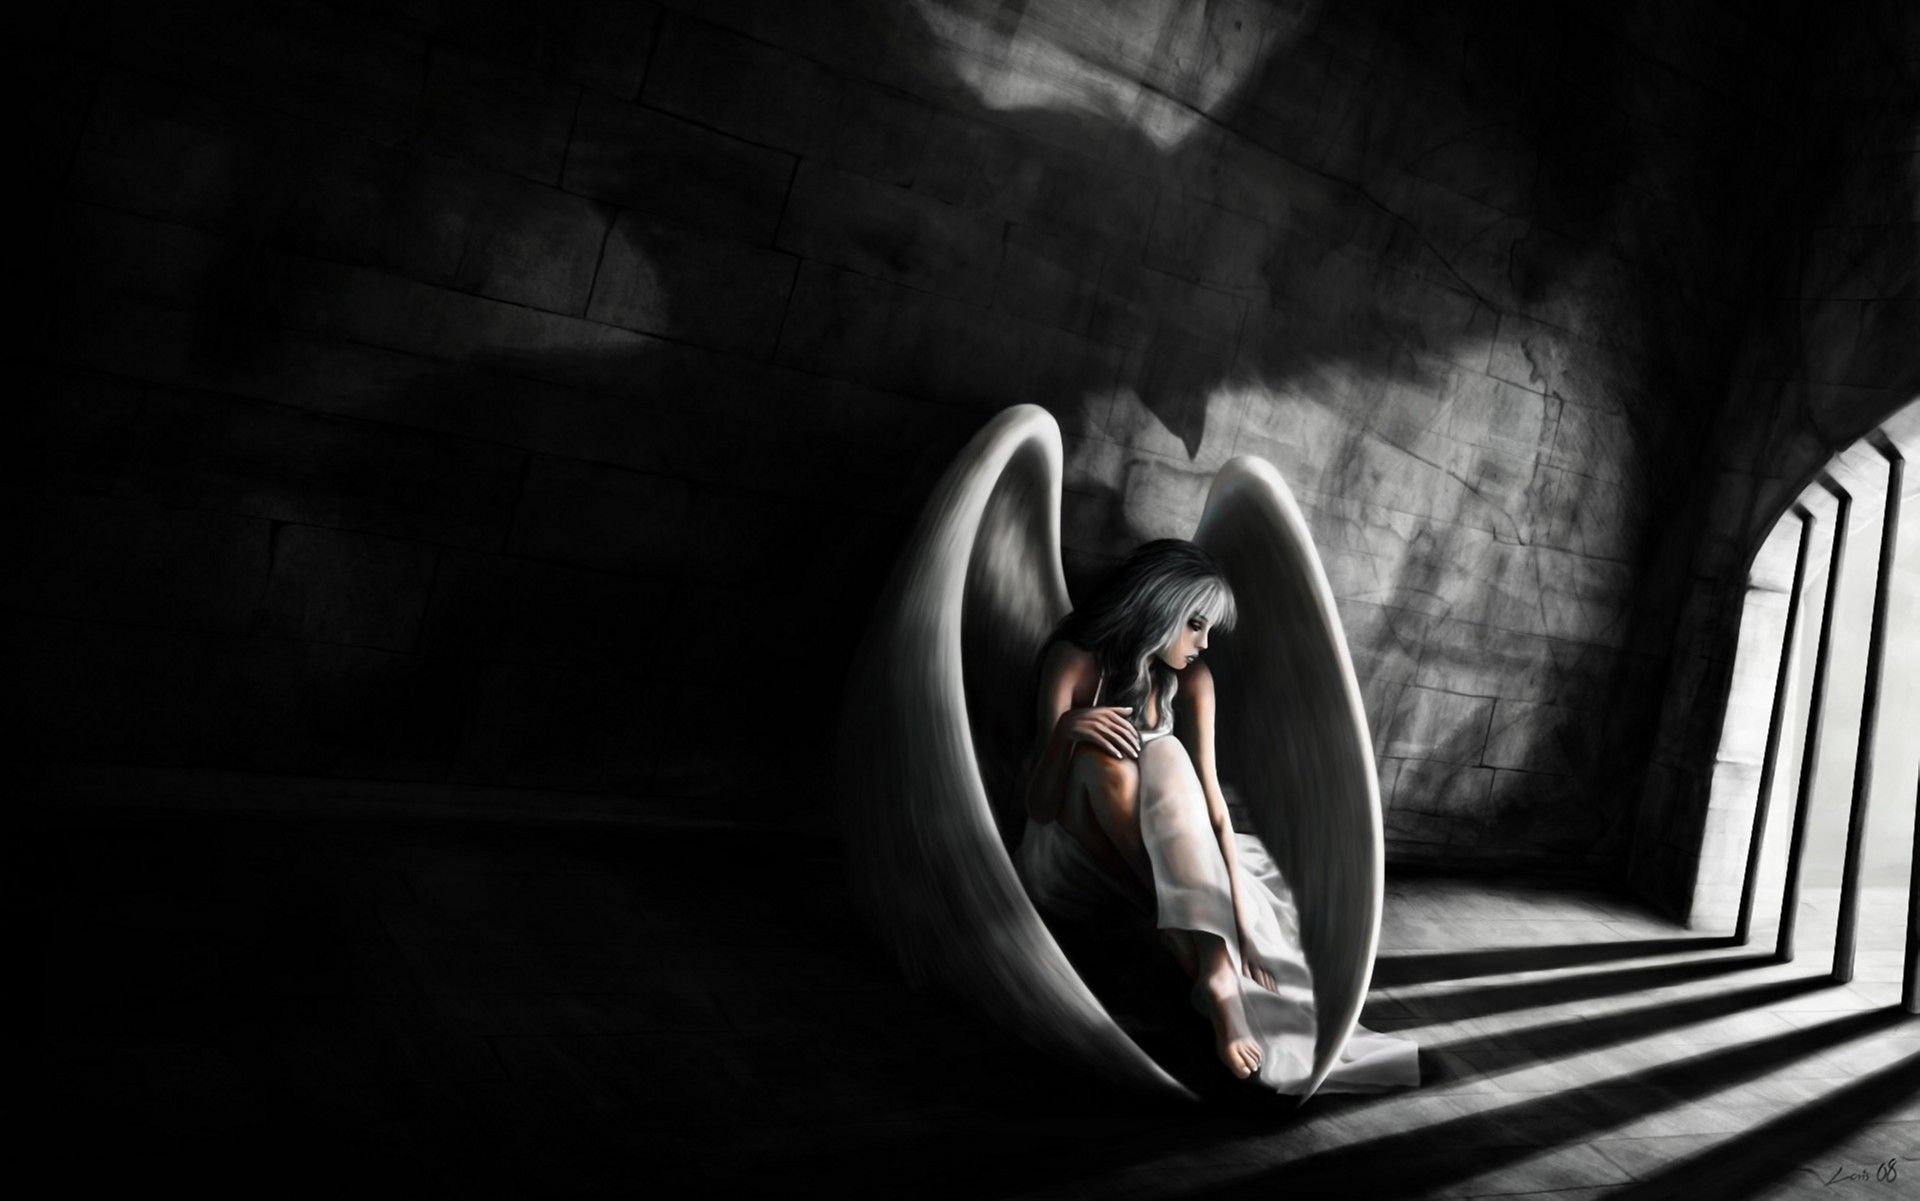 1920x1201 art, women,colourful, prison, download comic wallpapers, girl, iphone,fantasy,  abstract stock images, sorrow, bondage, sad, dark, mood, fallen angel ...